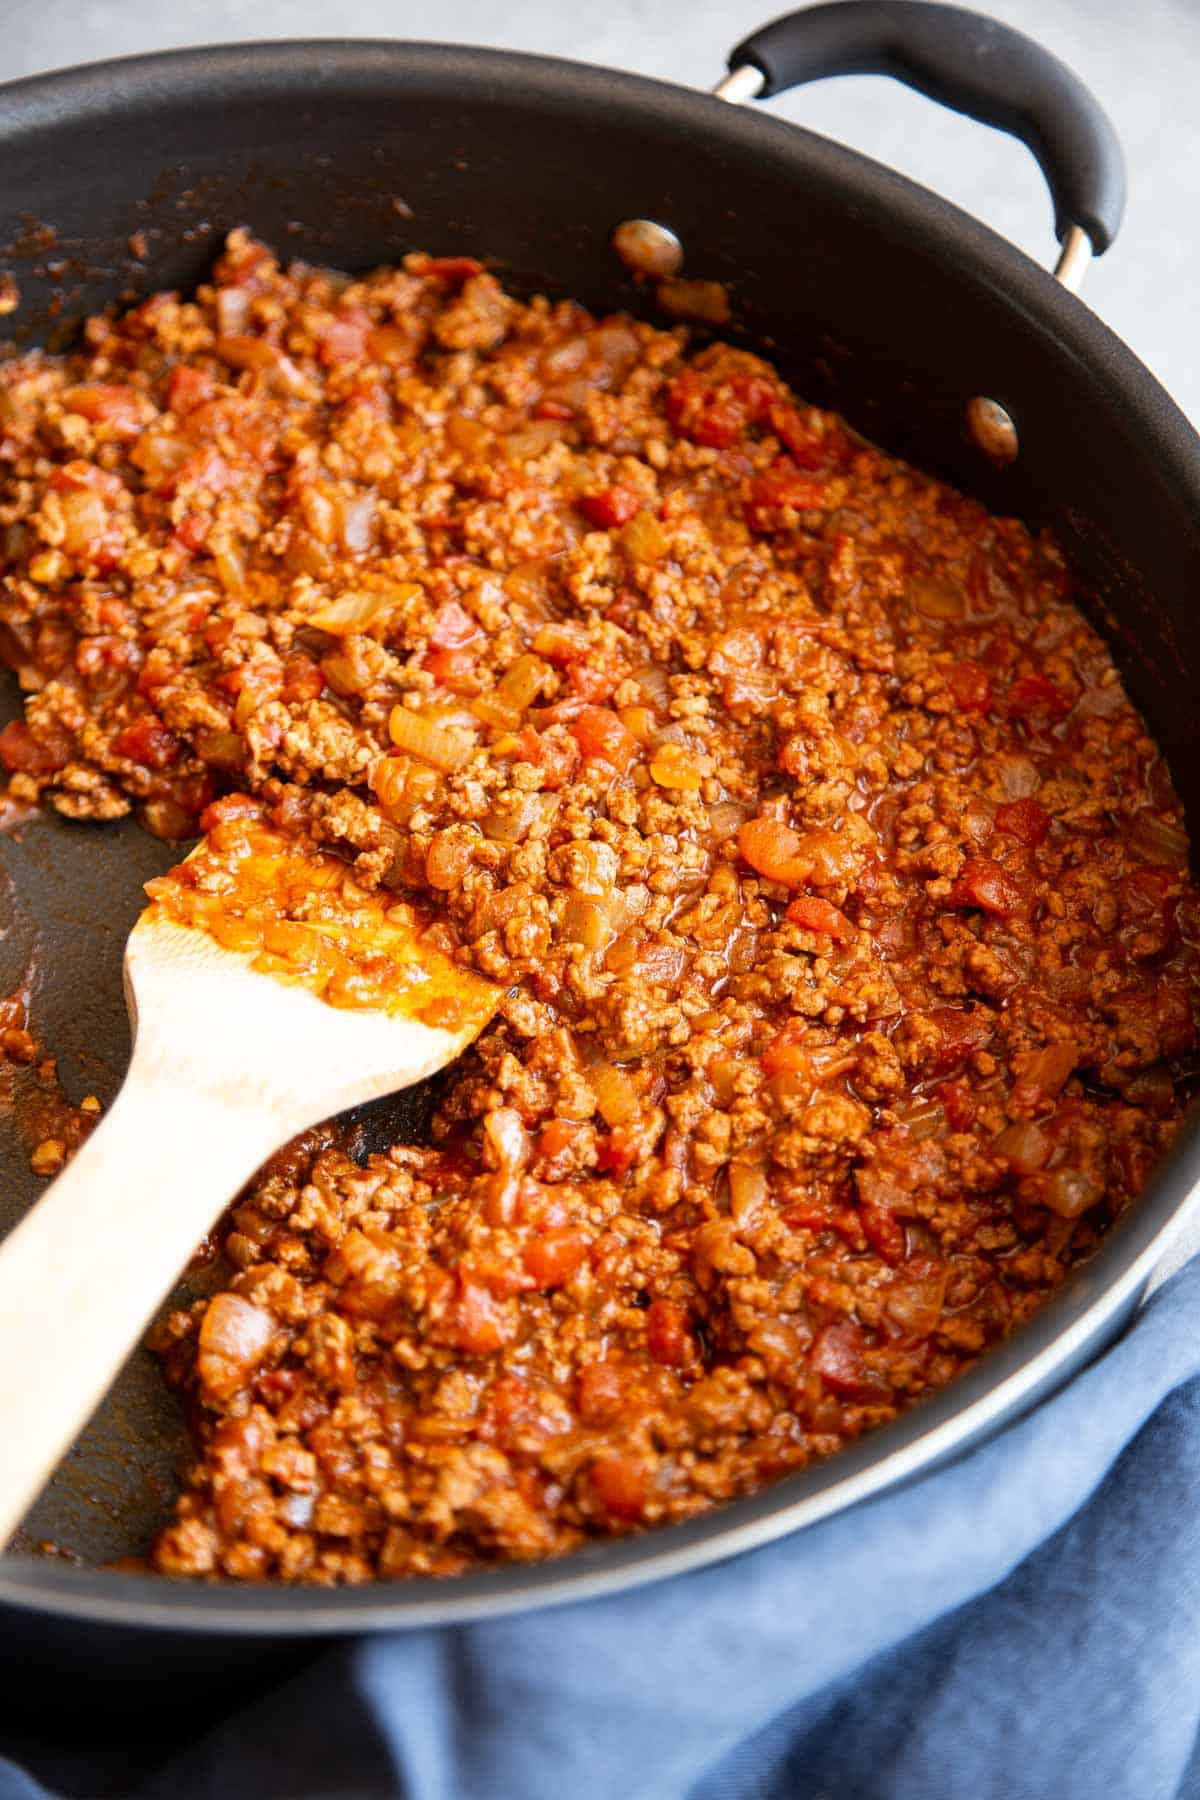 Cooked beef chili in a skillet